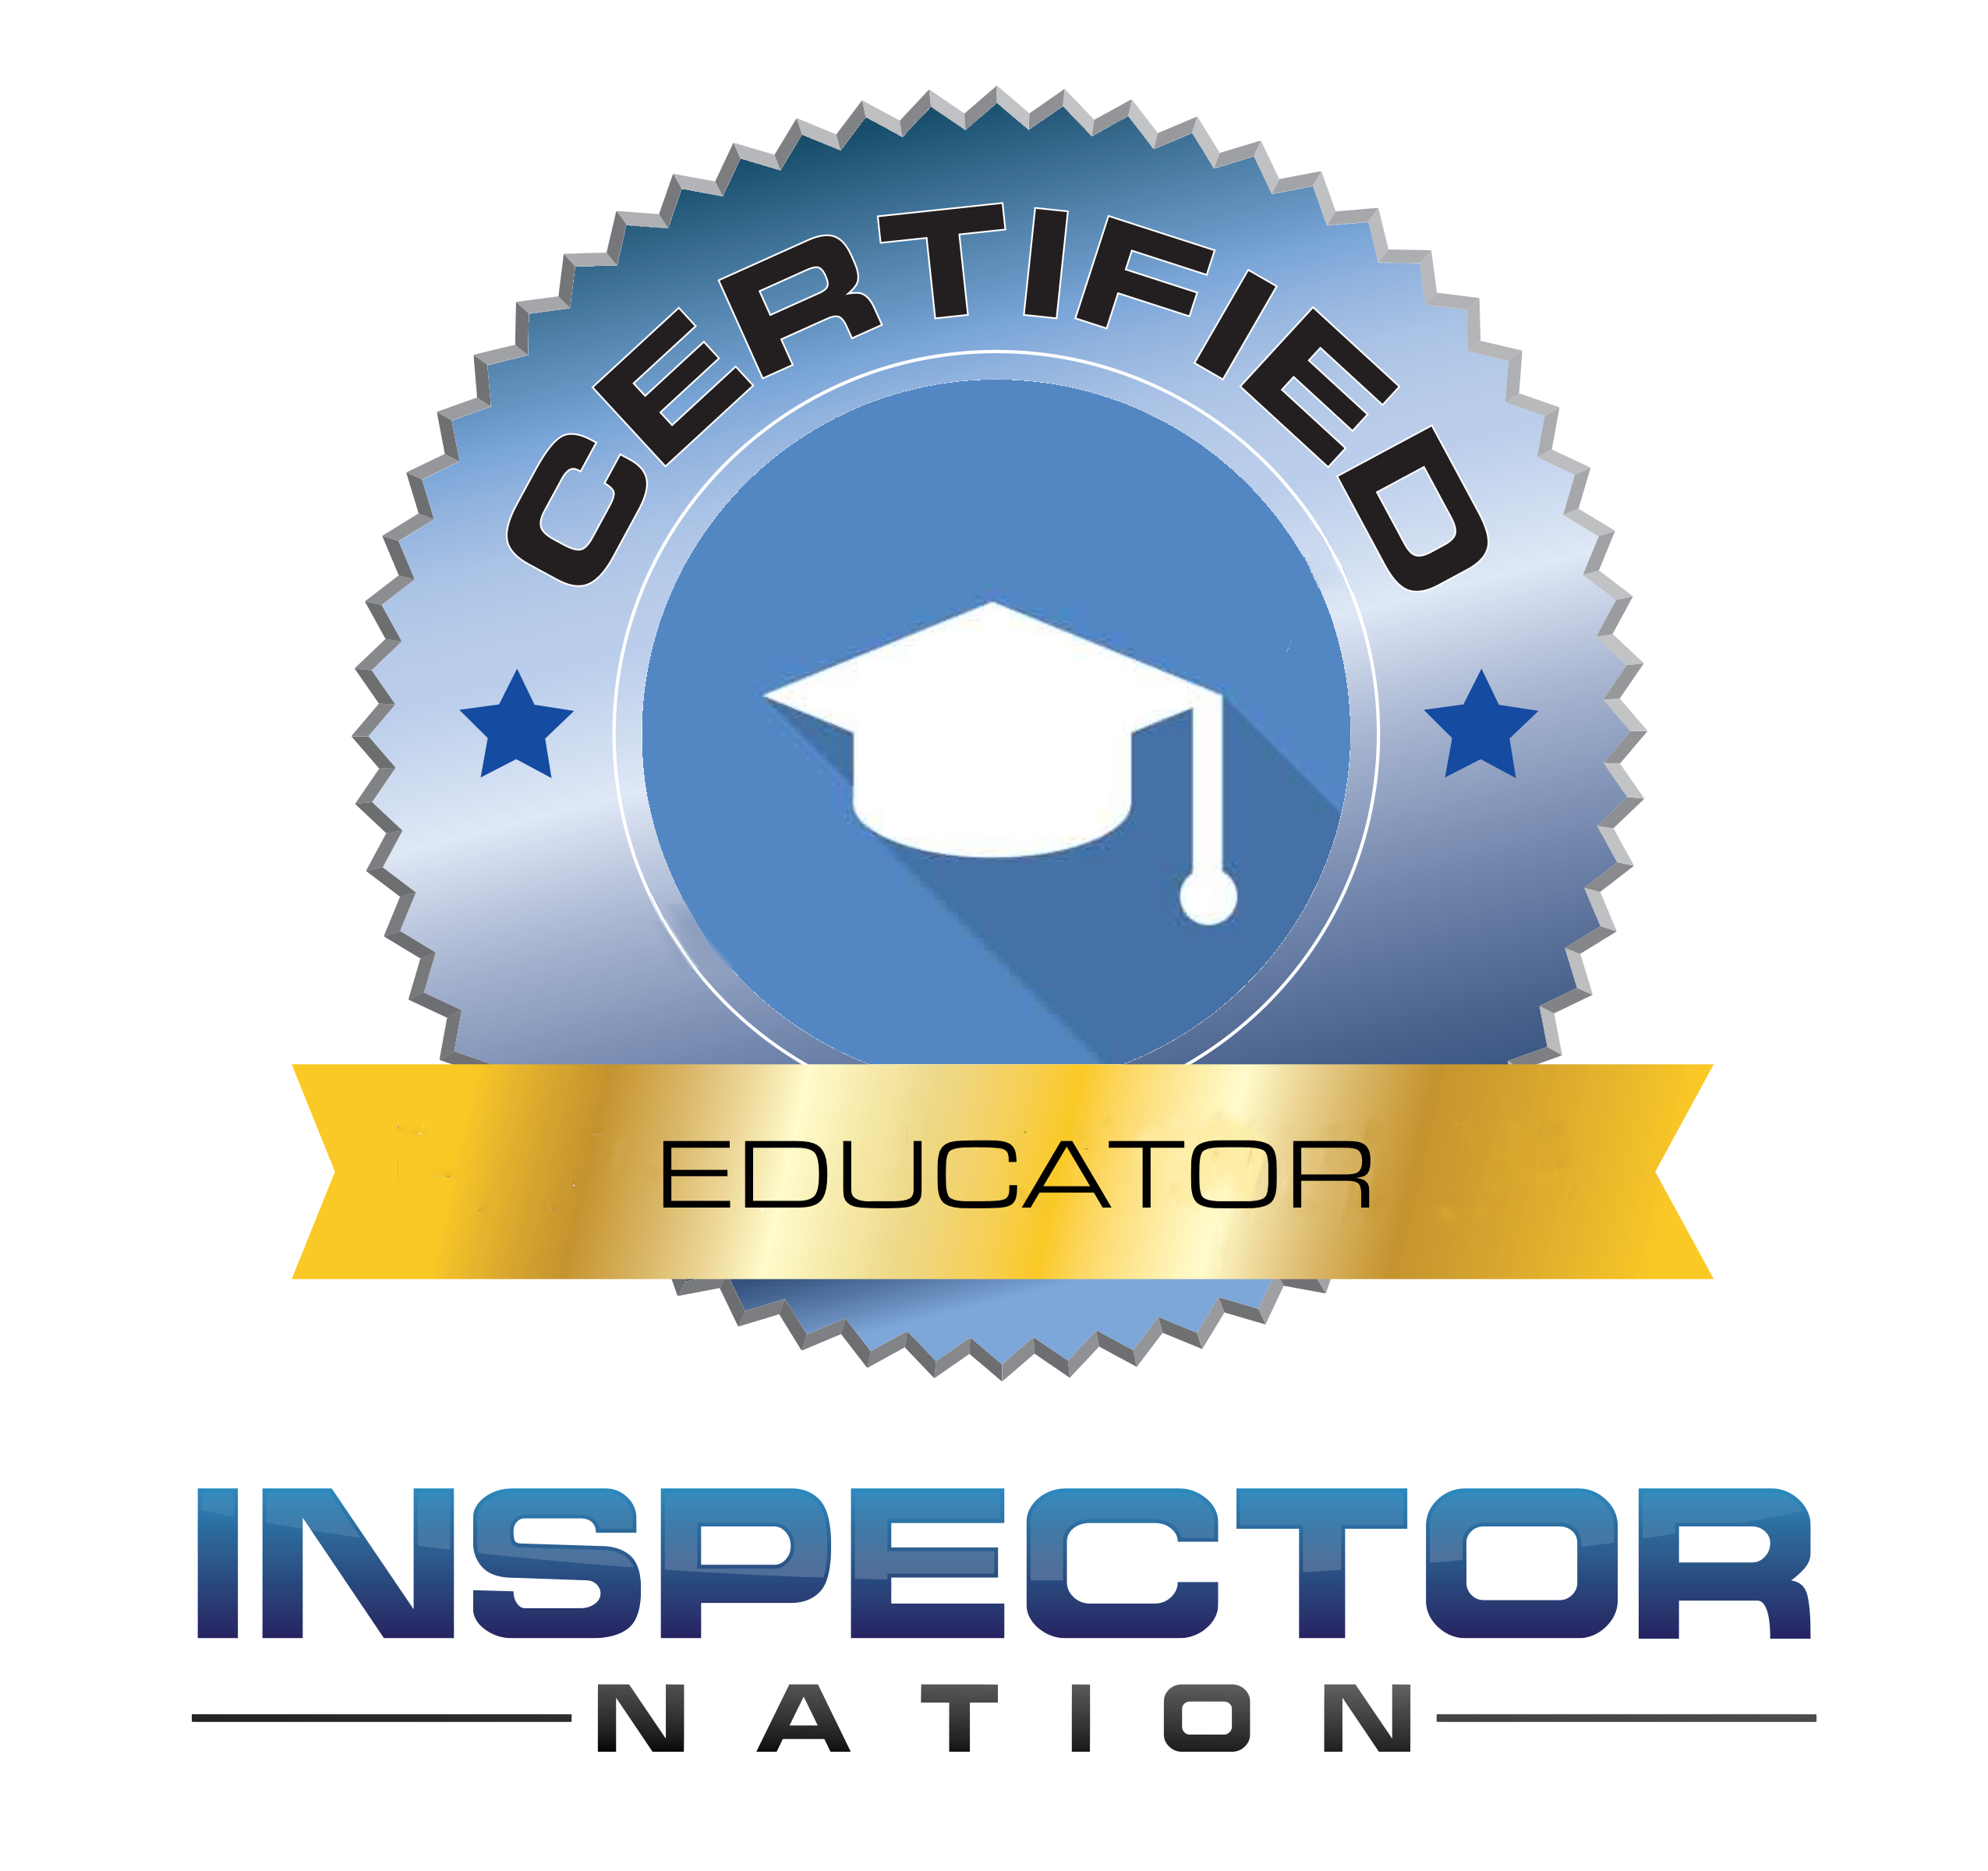 inspector nation certified education sponsor